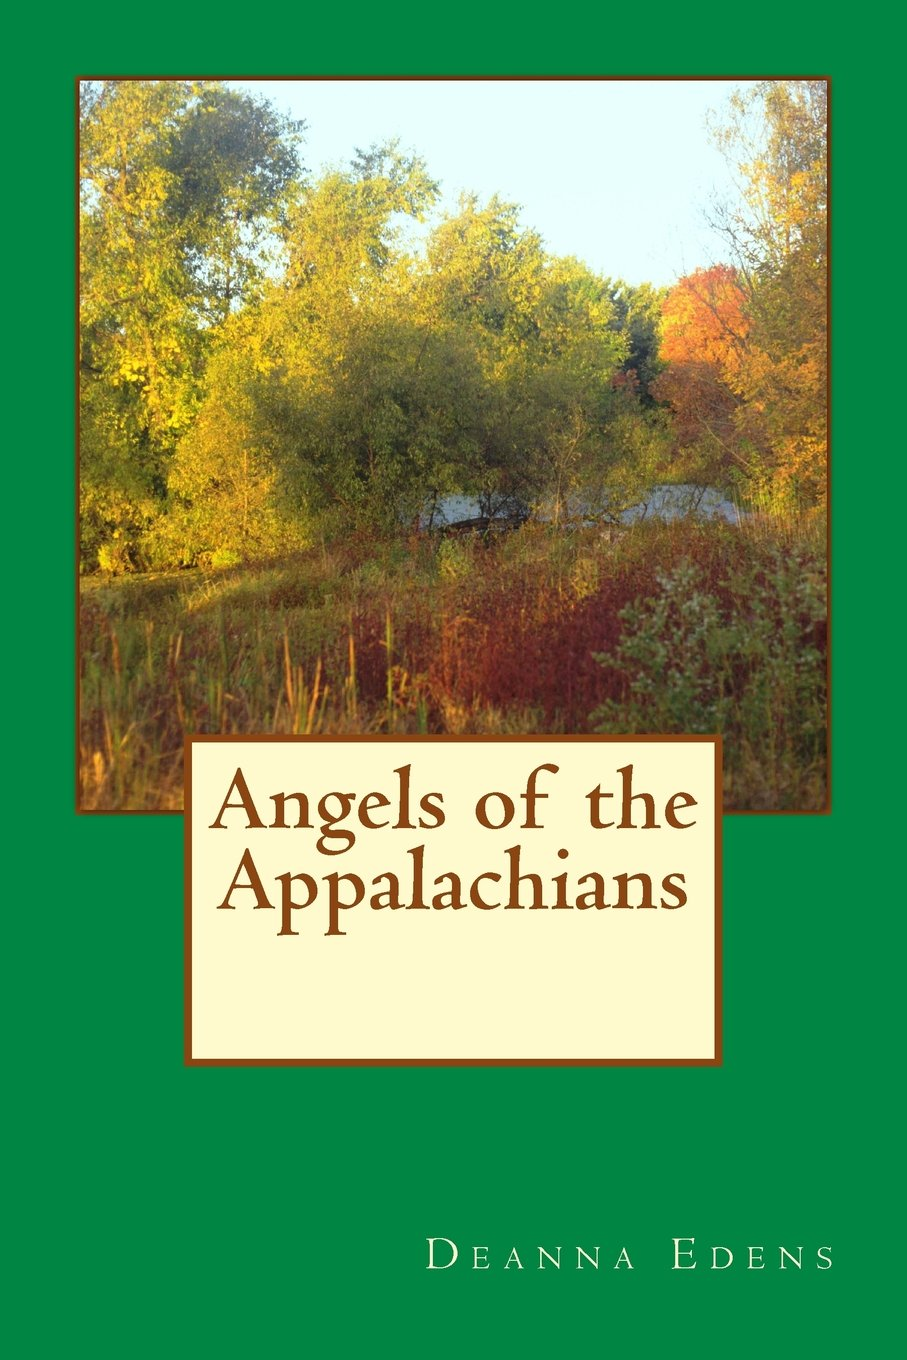 Download Angels of the Appalachians (Volume 1) PDF